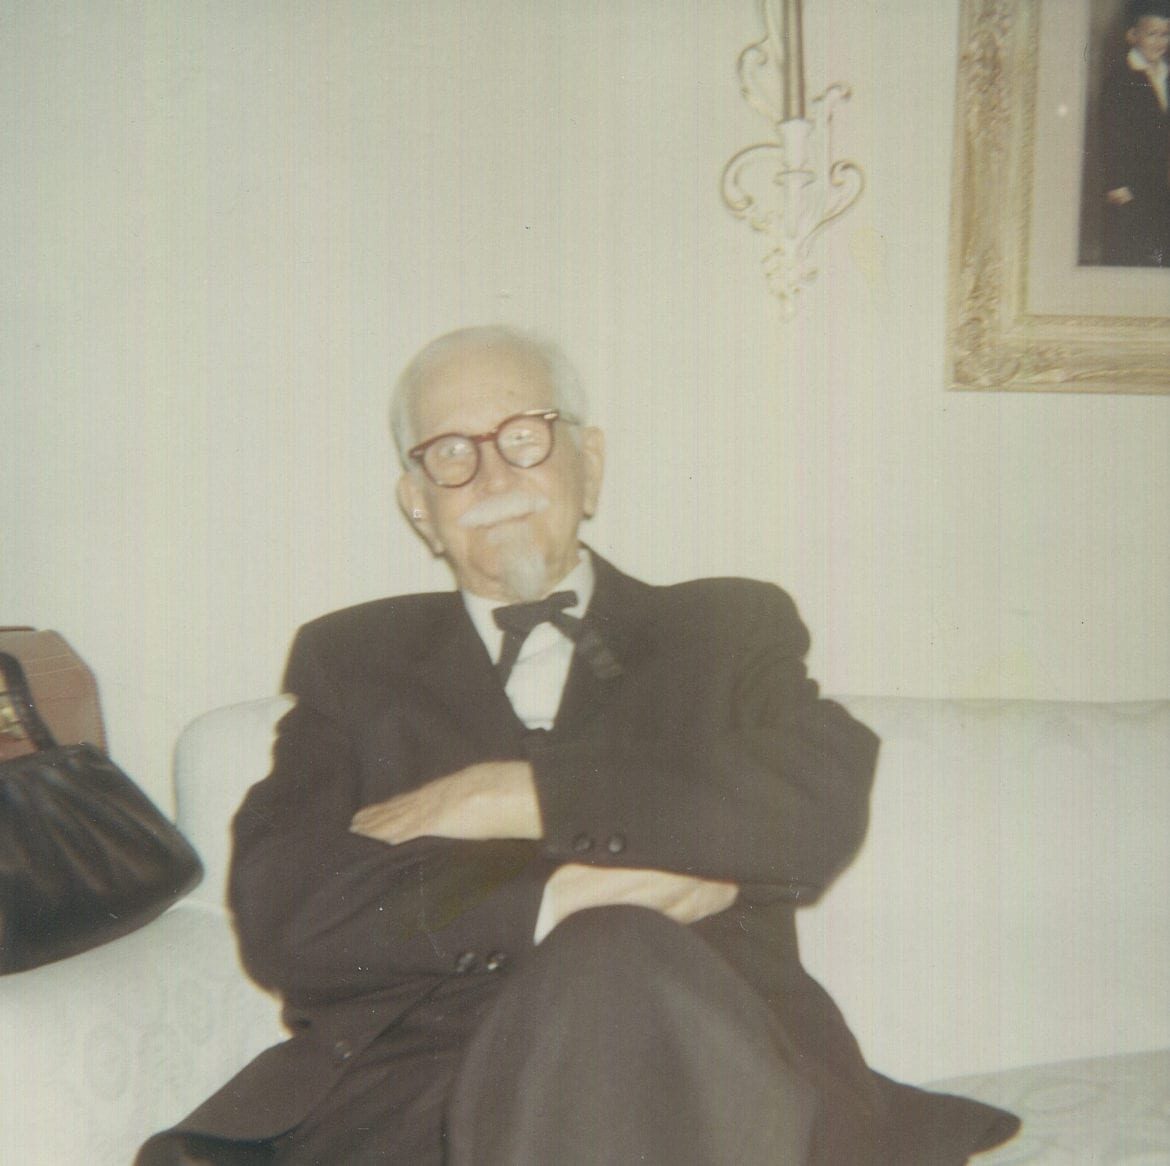 An old photo of a man in a living room.